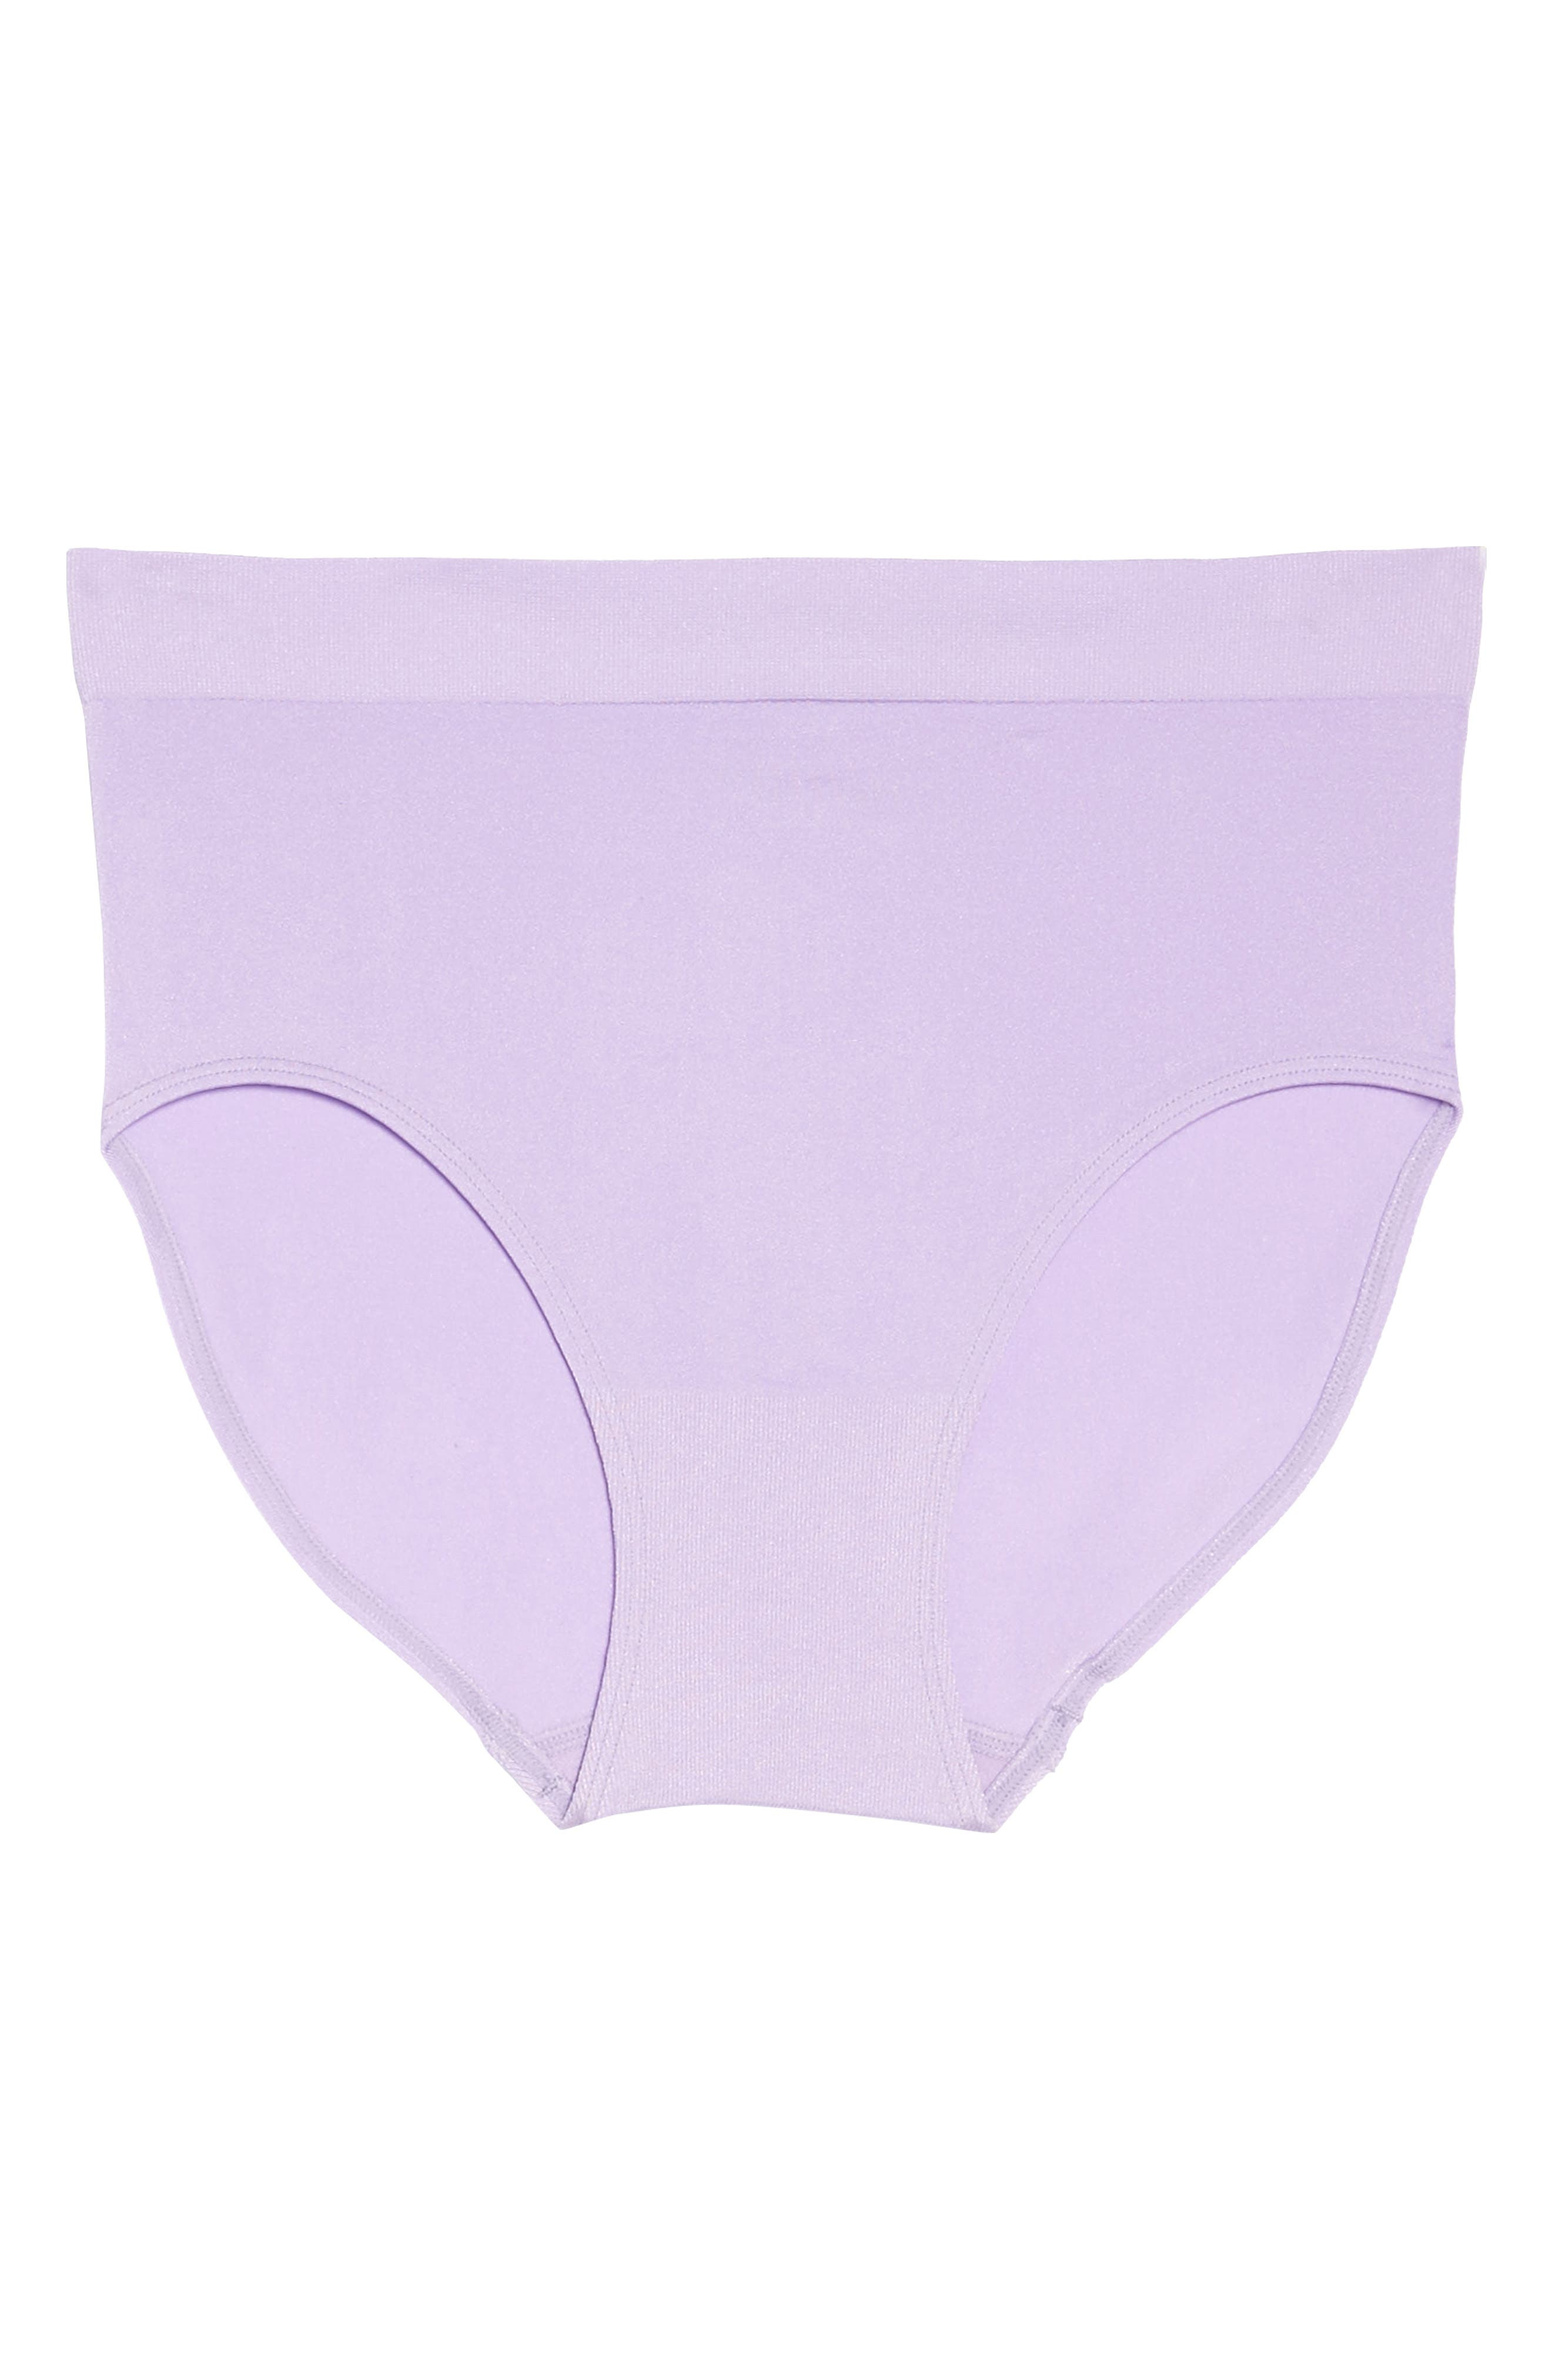 B Smooth Briefs,                             Alternate thumbnail 267, color,